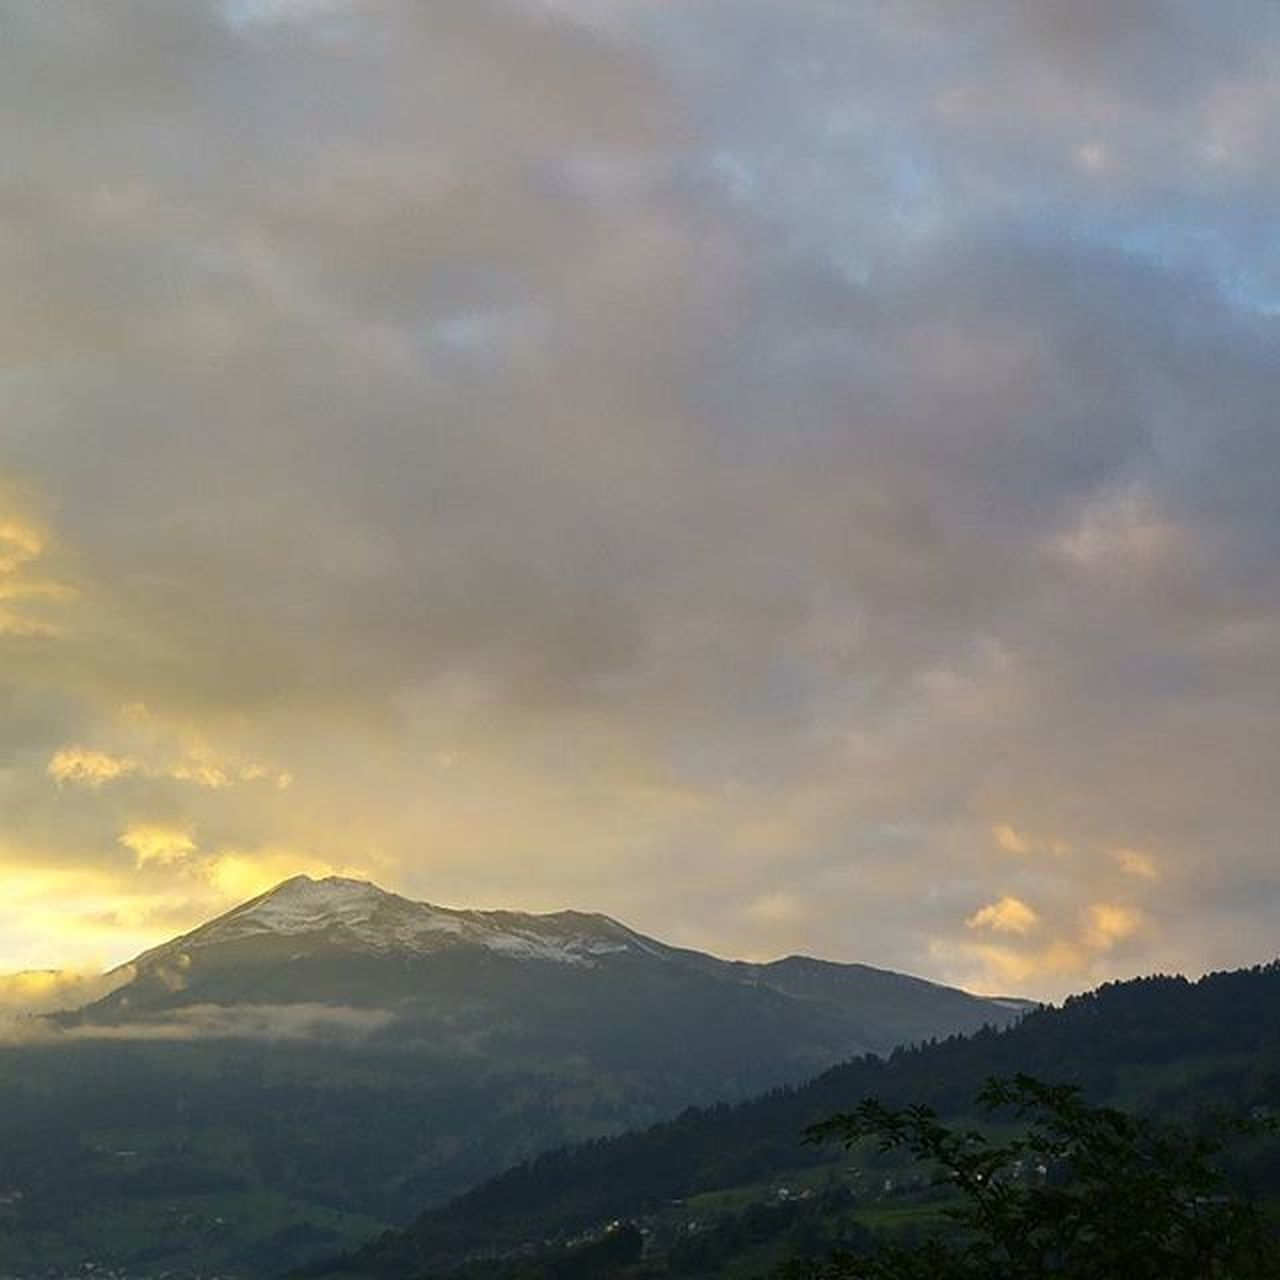 mountain, cloud - sky, nature, sky, outdoors, no people, beauty in nature, scenics, tranquility, mountain range, landscape, day, tree